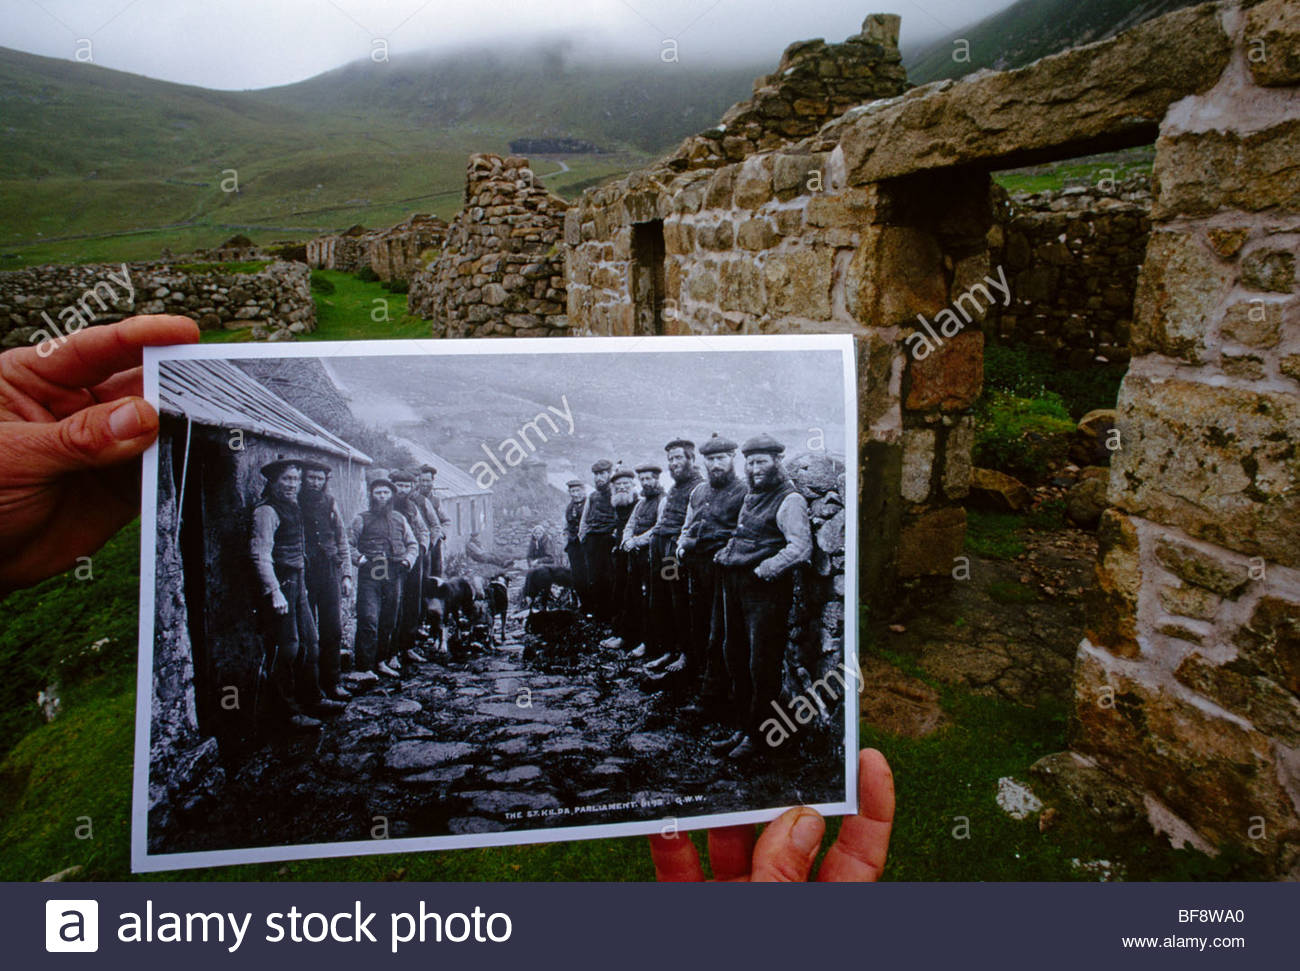 Deserted community which was completely dependent on puffins and other birds as food source, St. Kilda, Scotland - Stock Image